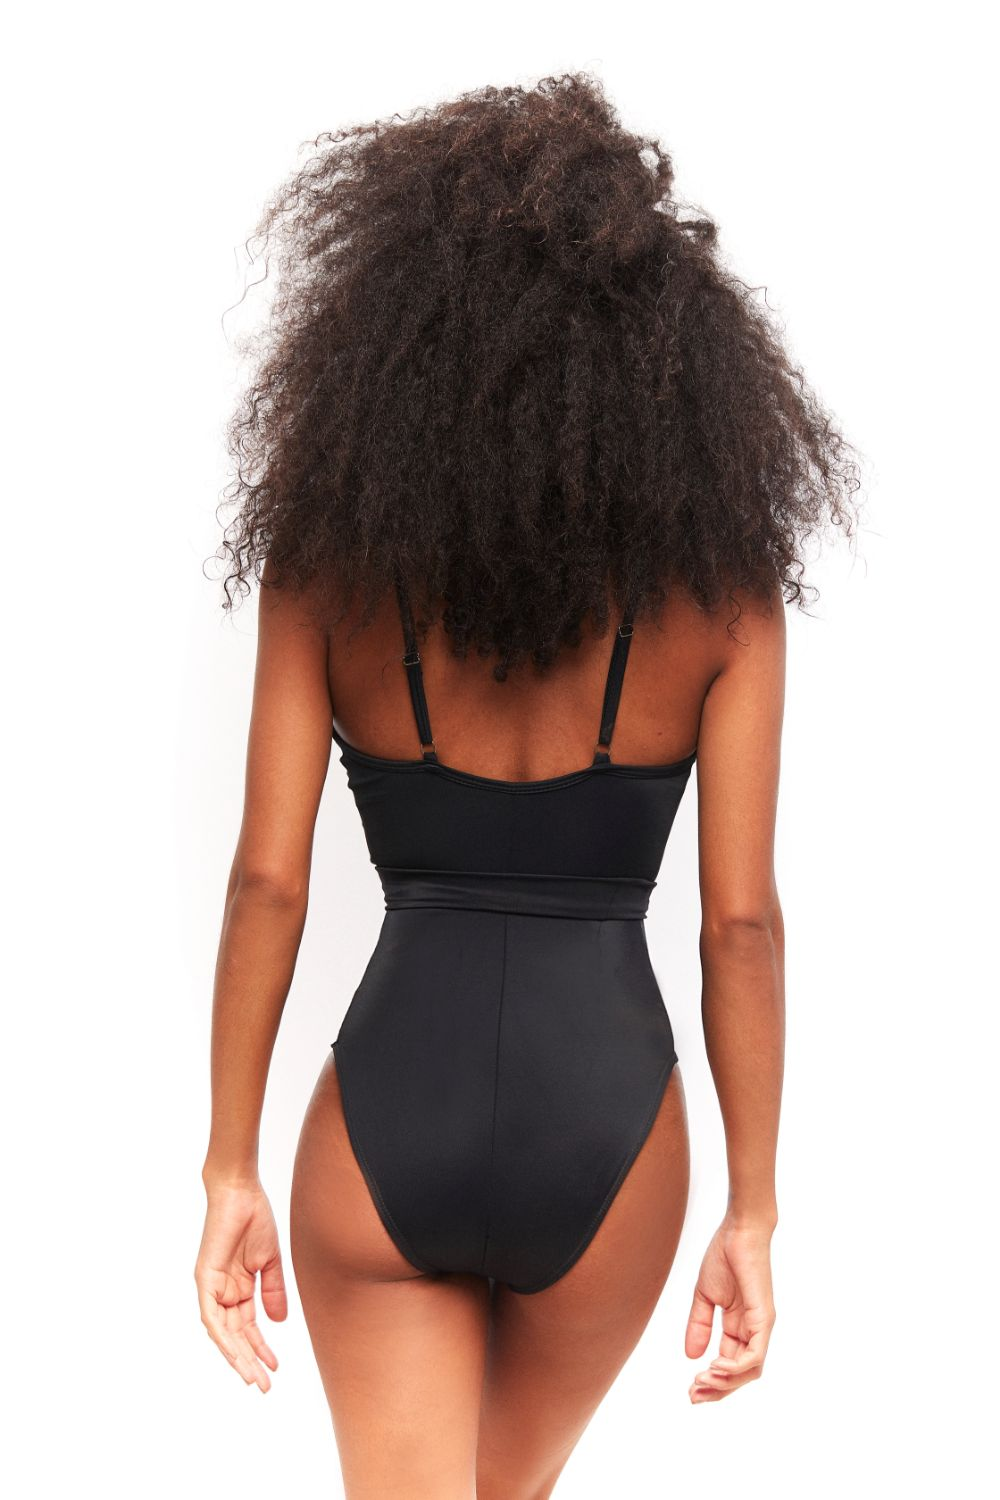 Black Pearl One Piece Woman Swimwear